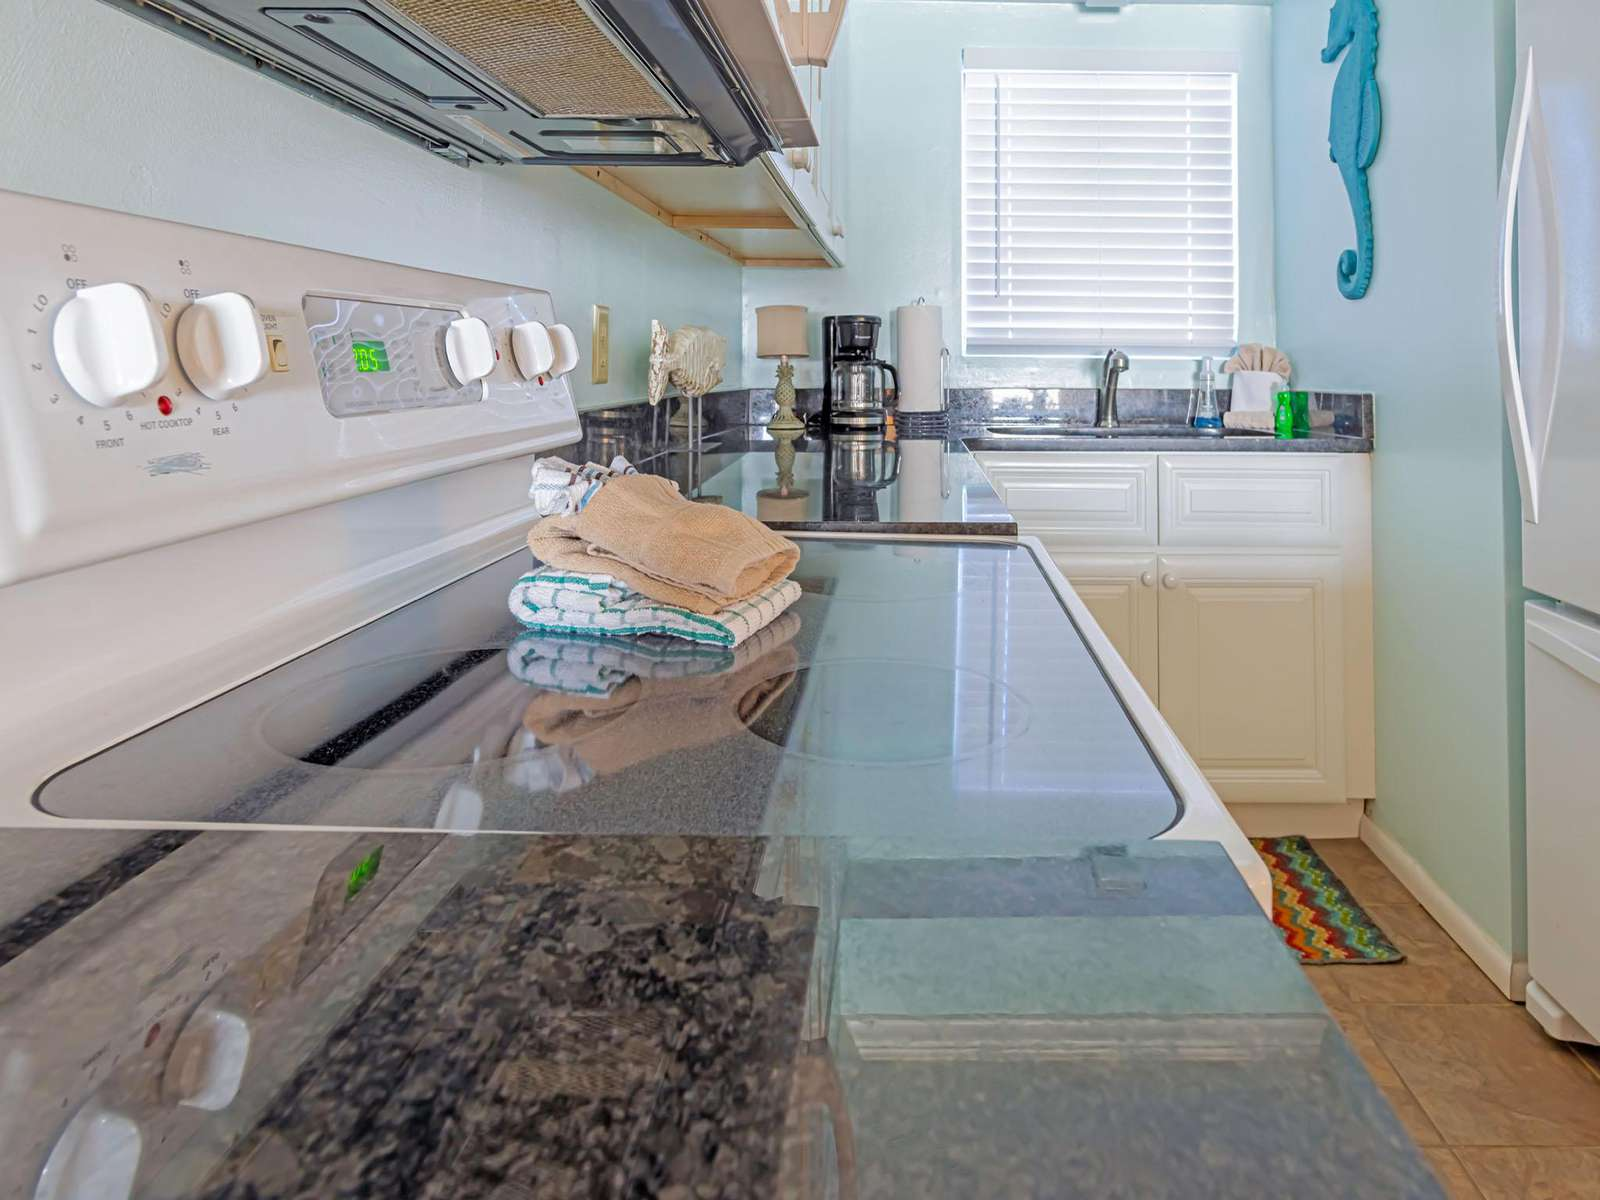 Clean fully stocked kitchen!